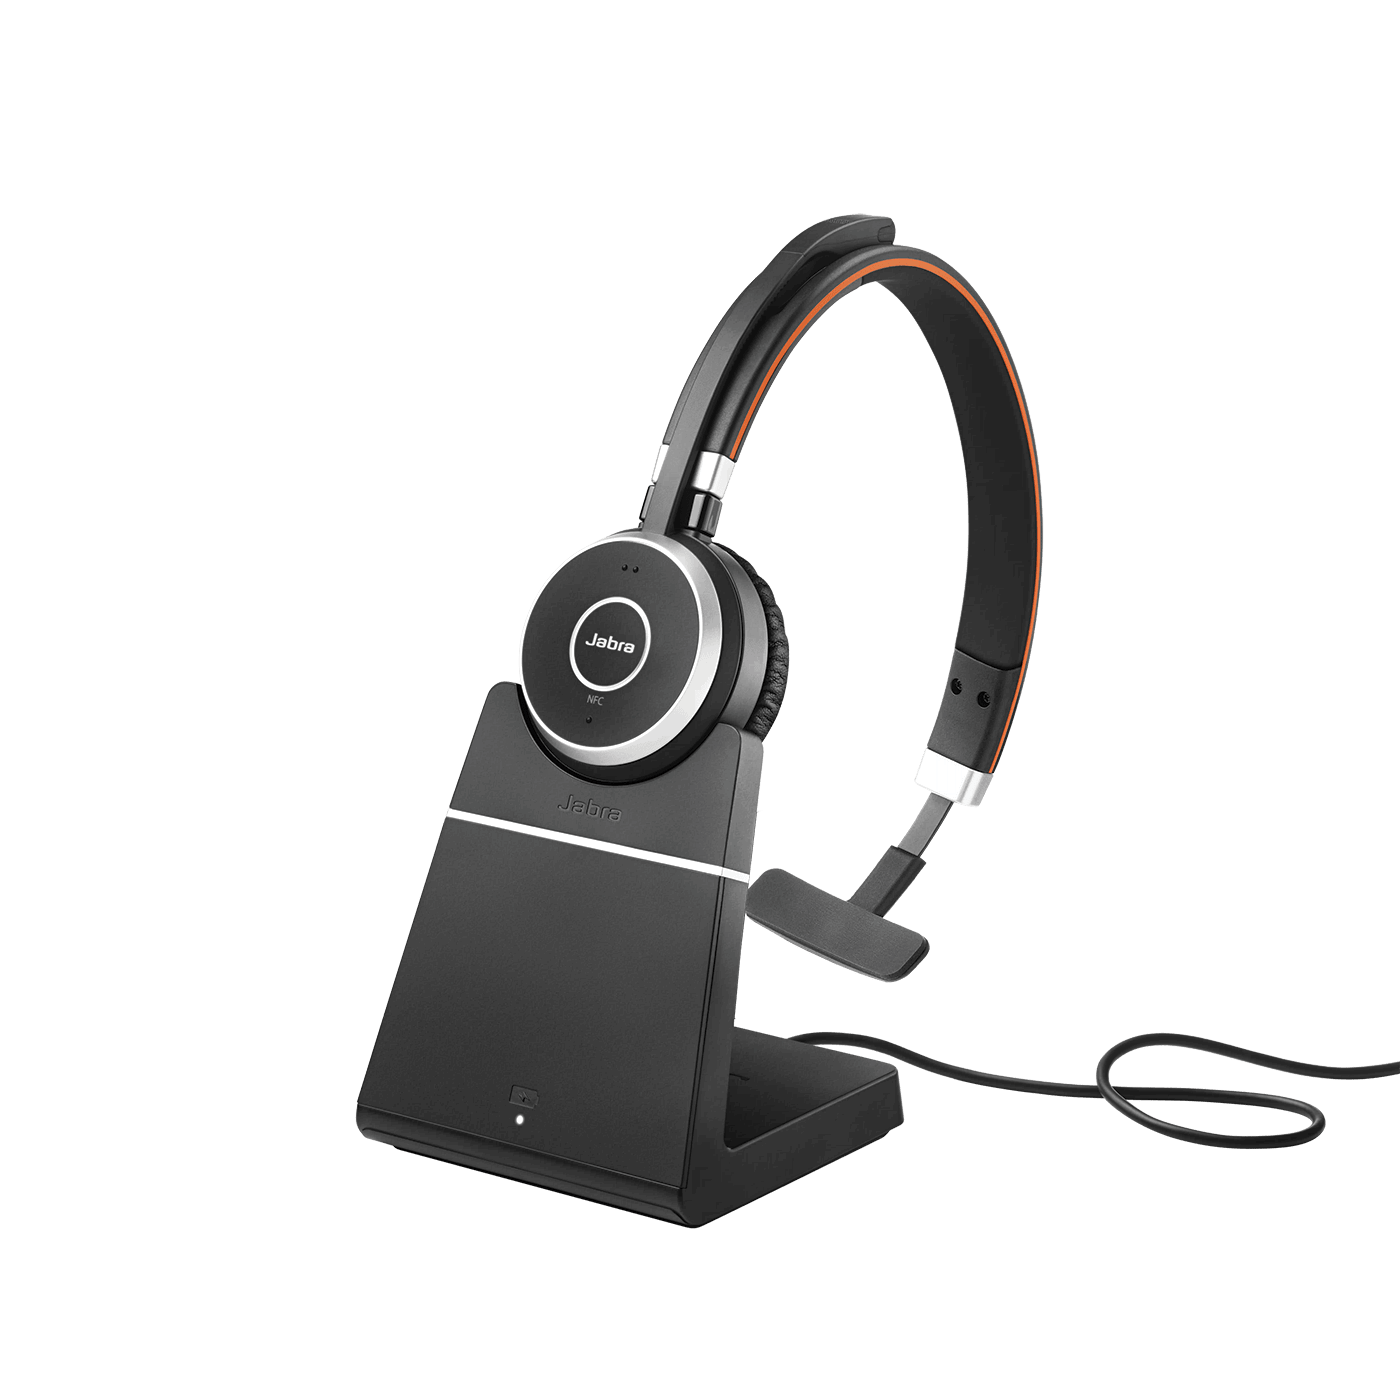 Jabra Evolve 65 Uc Mono Headset 6593 823 499 Headsets Direct Inc